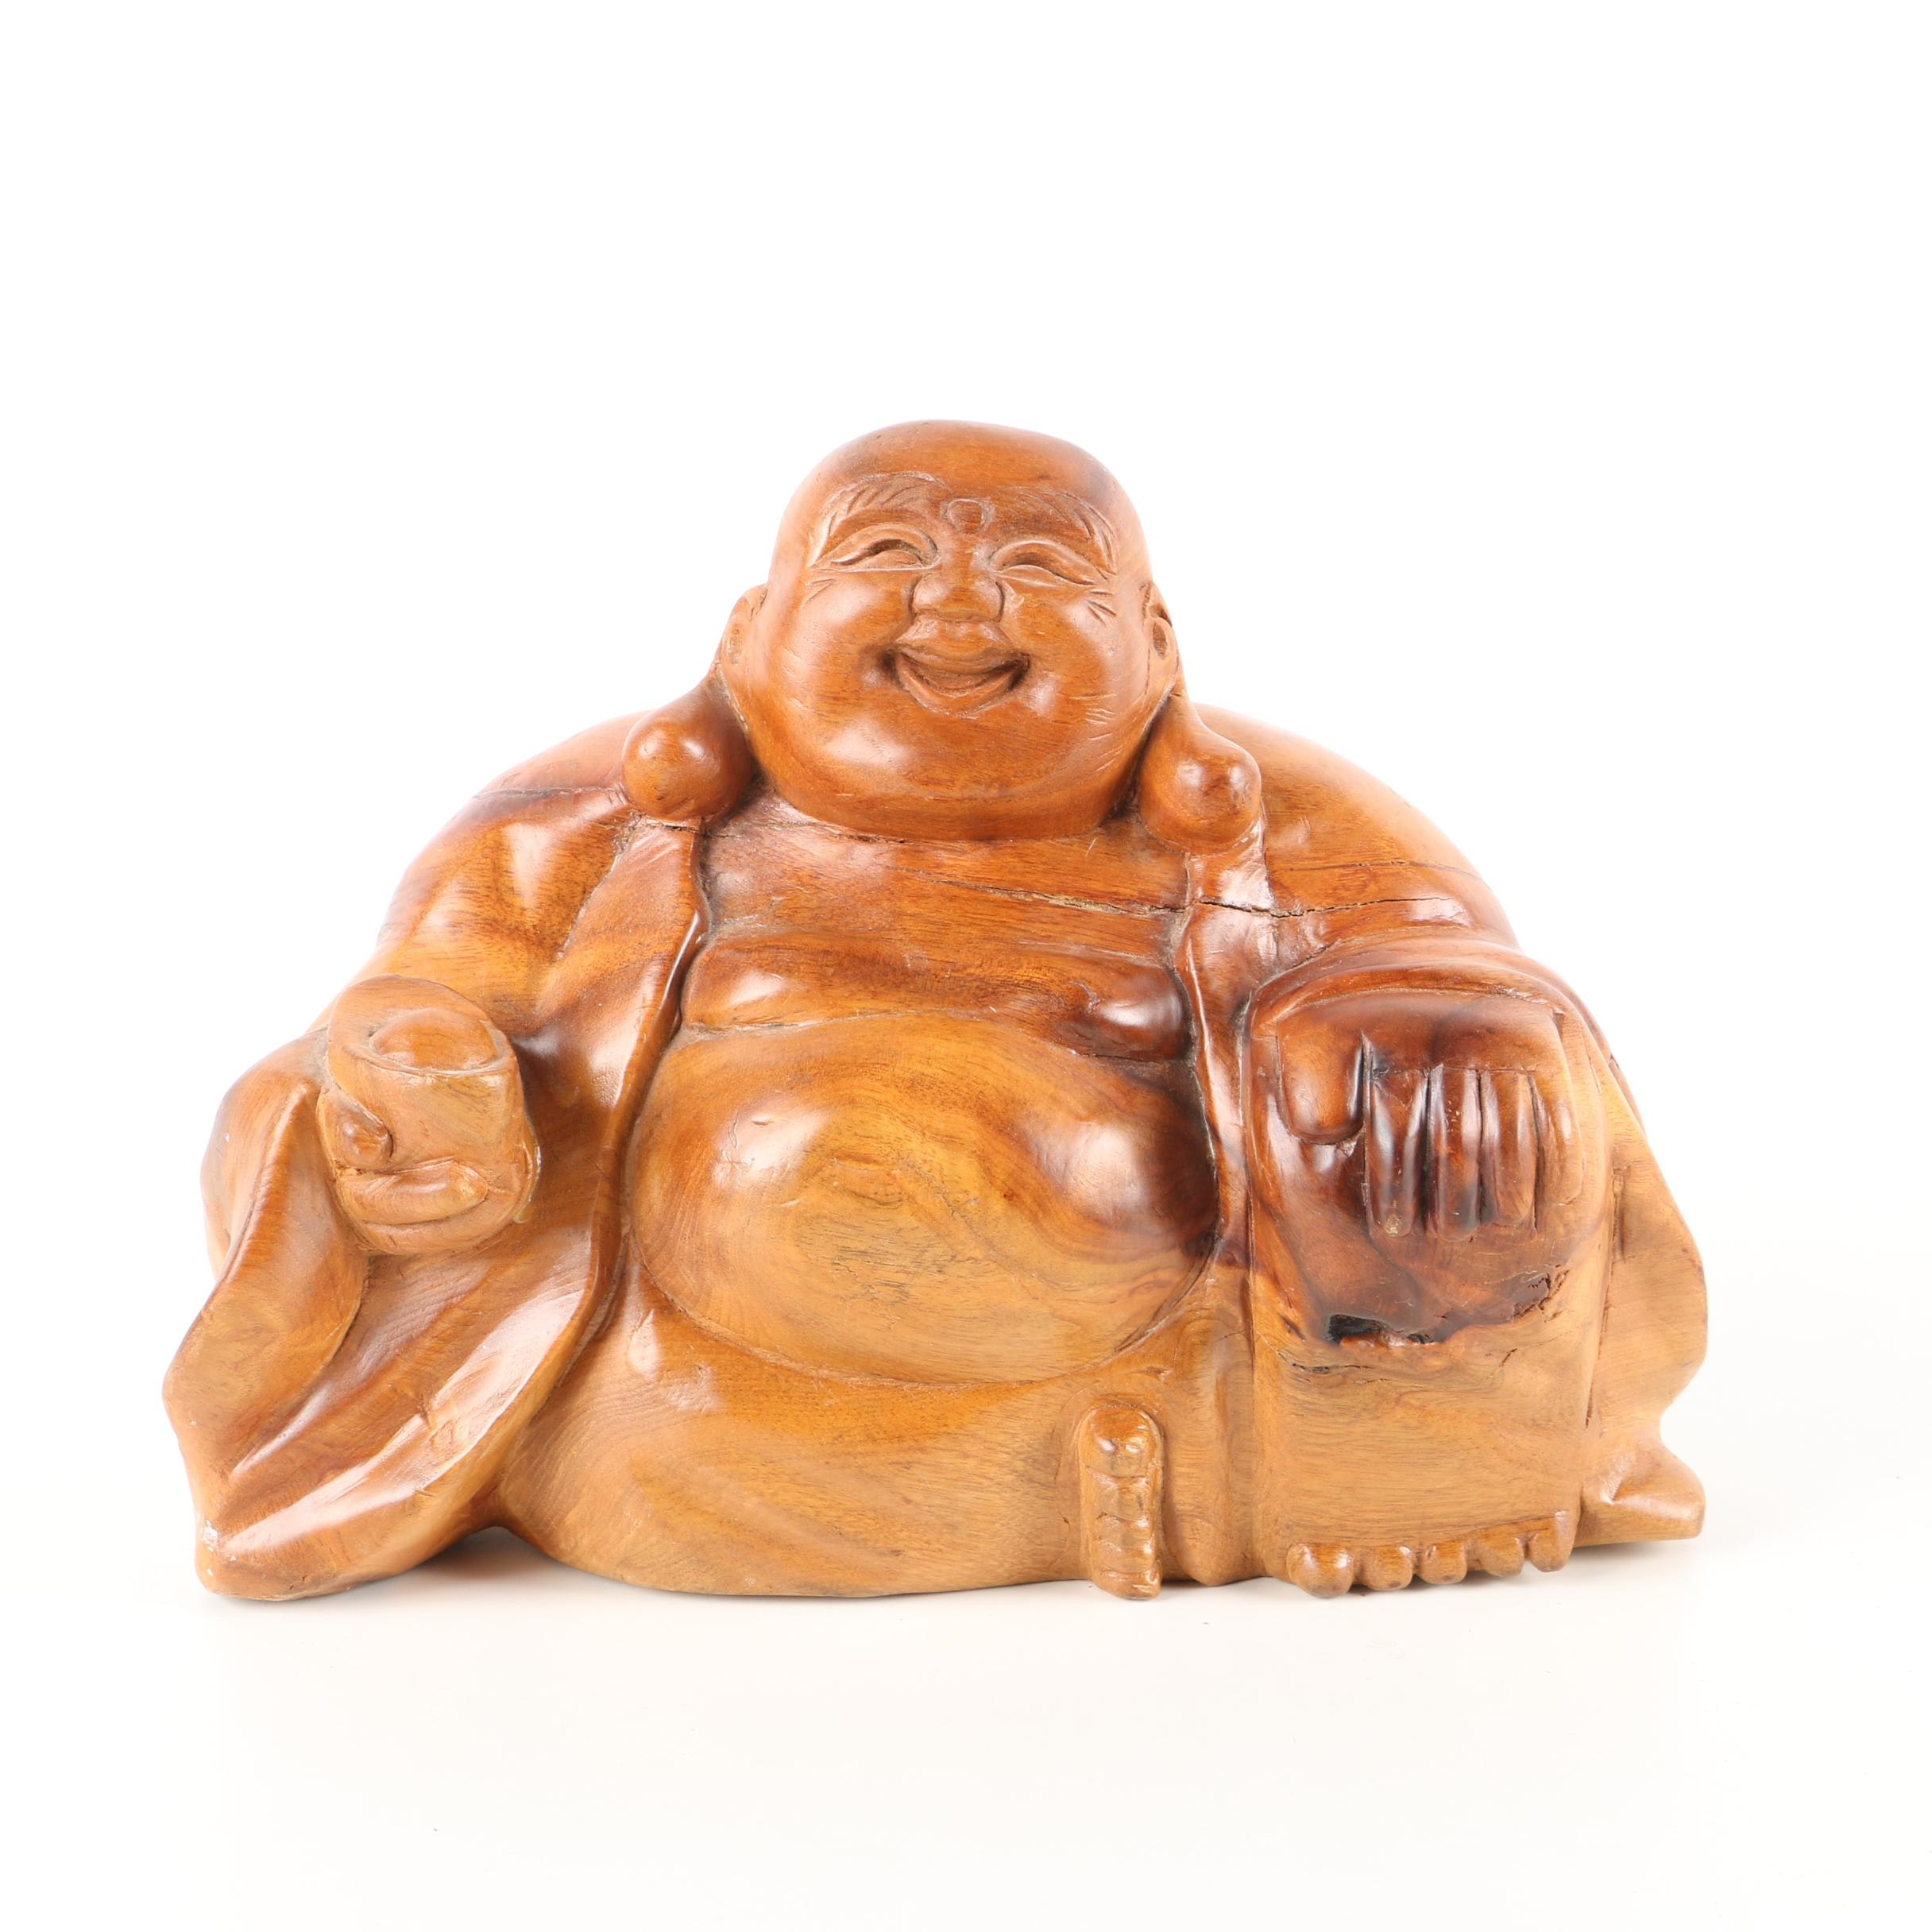 East Asian Inspired Carved Teak Laughing Budai Figure